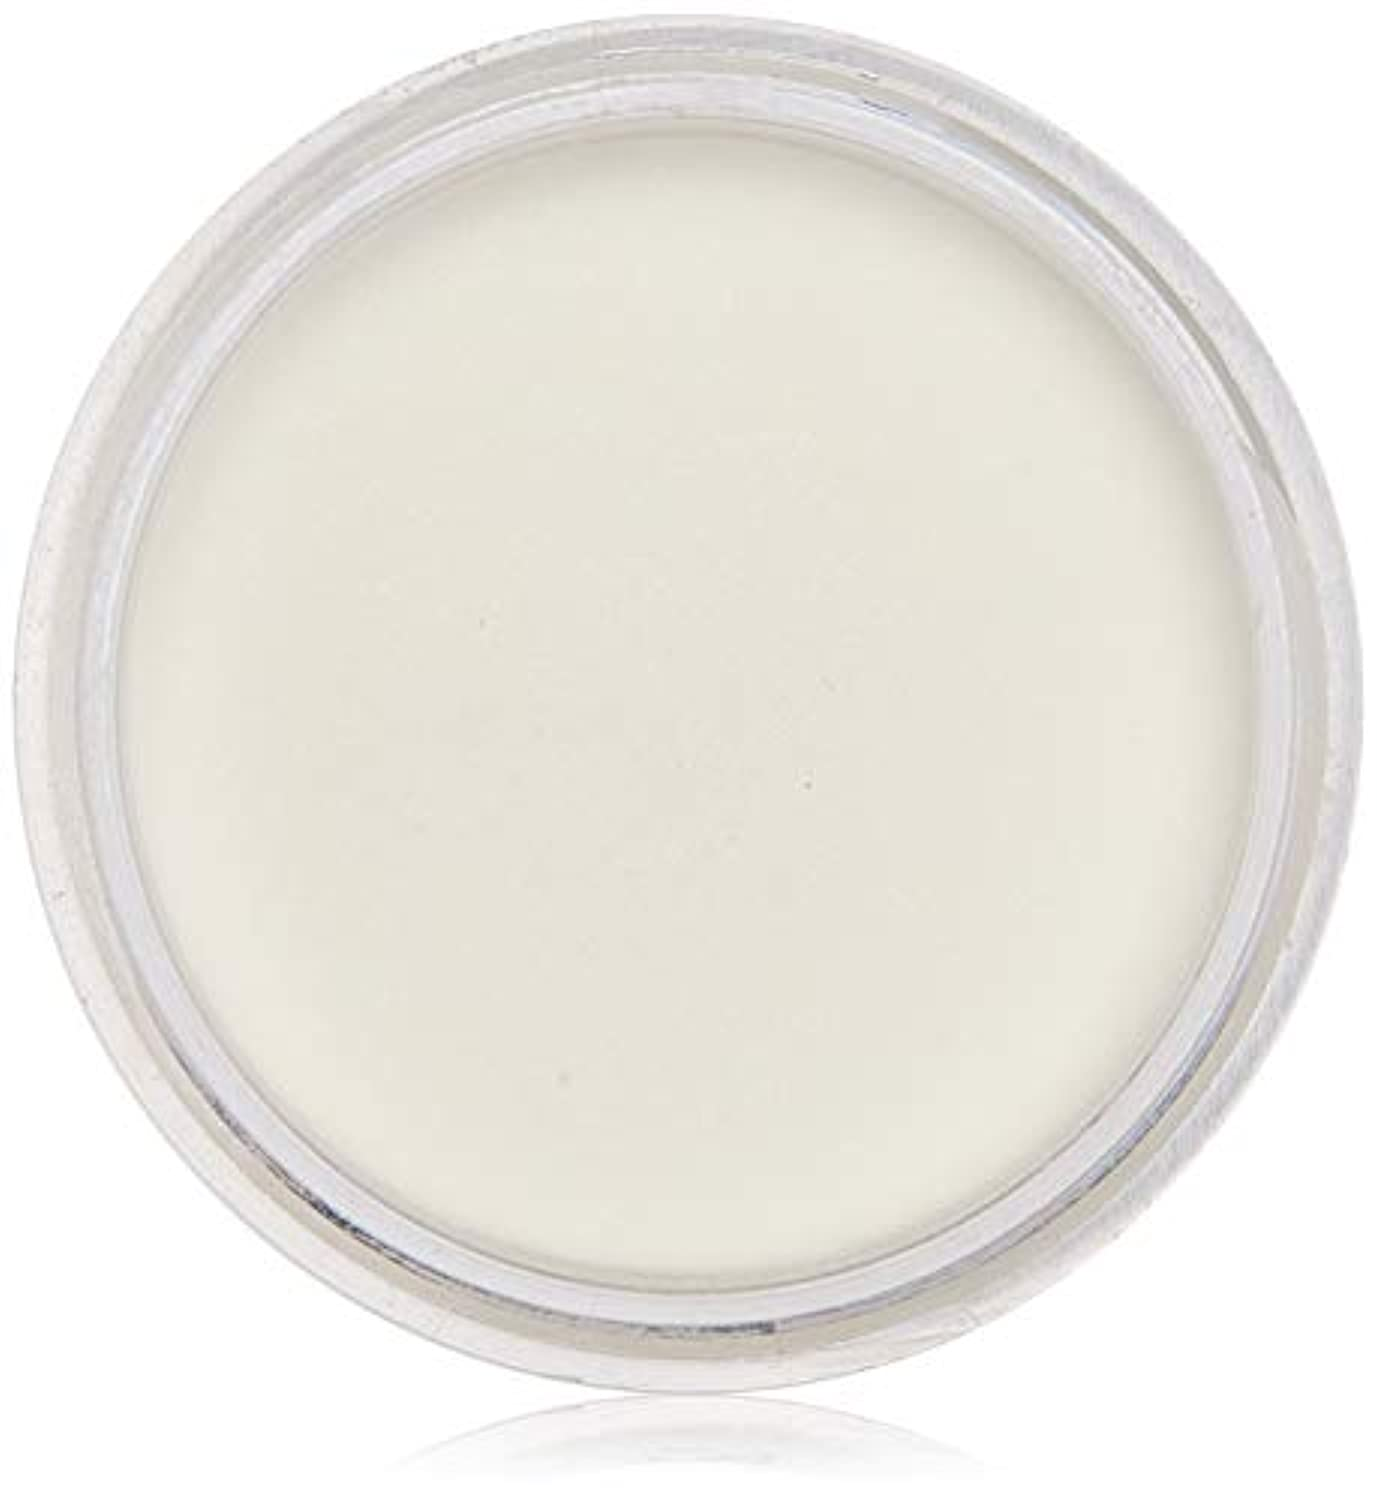 チート一元化する解明Harmony Gelish - Acrylic Dip Powder - Clear as Day - 23g / 0.8oz